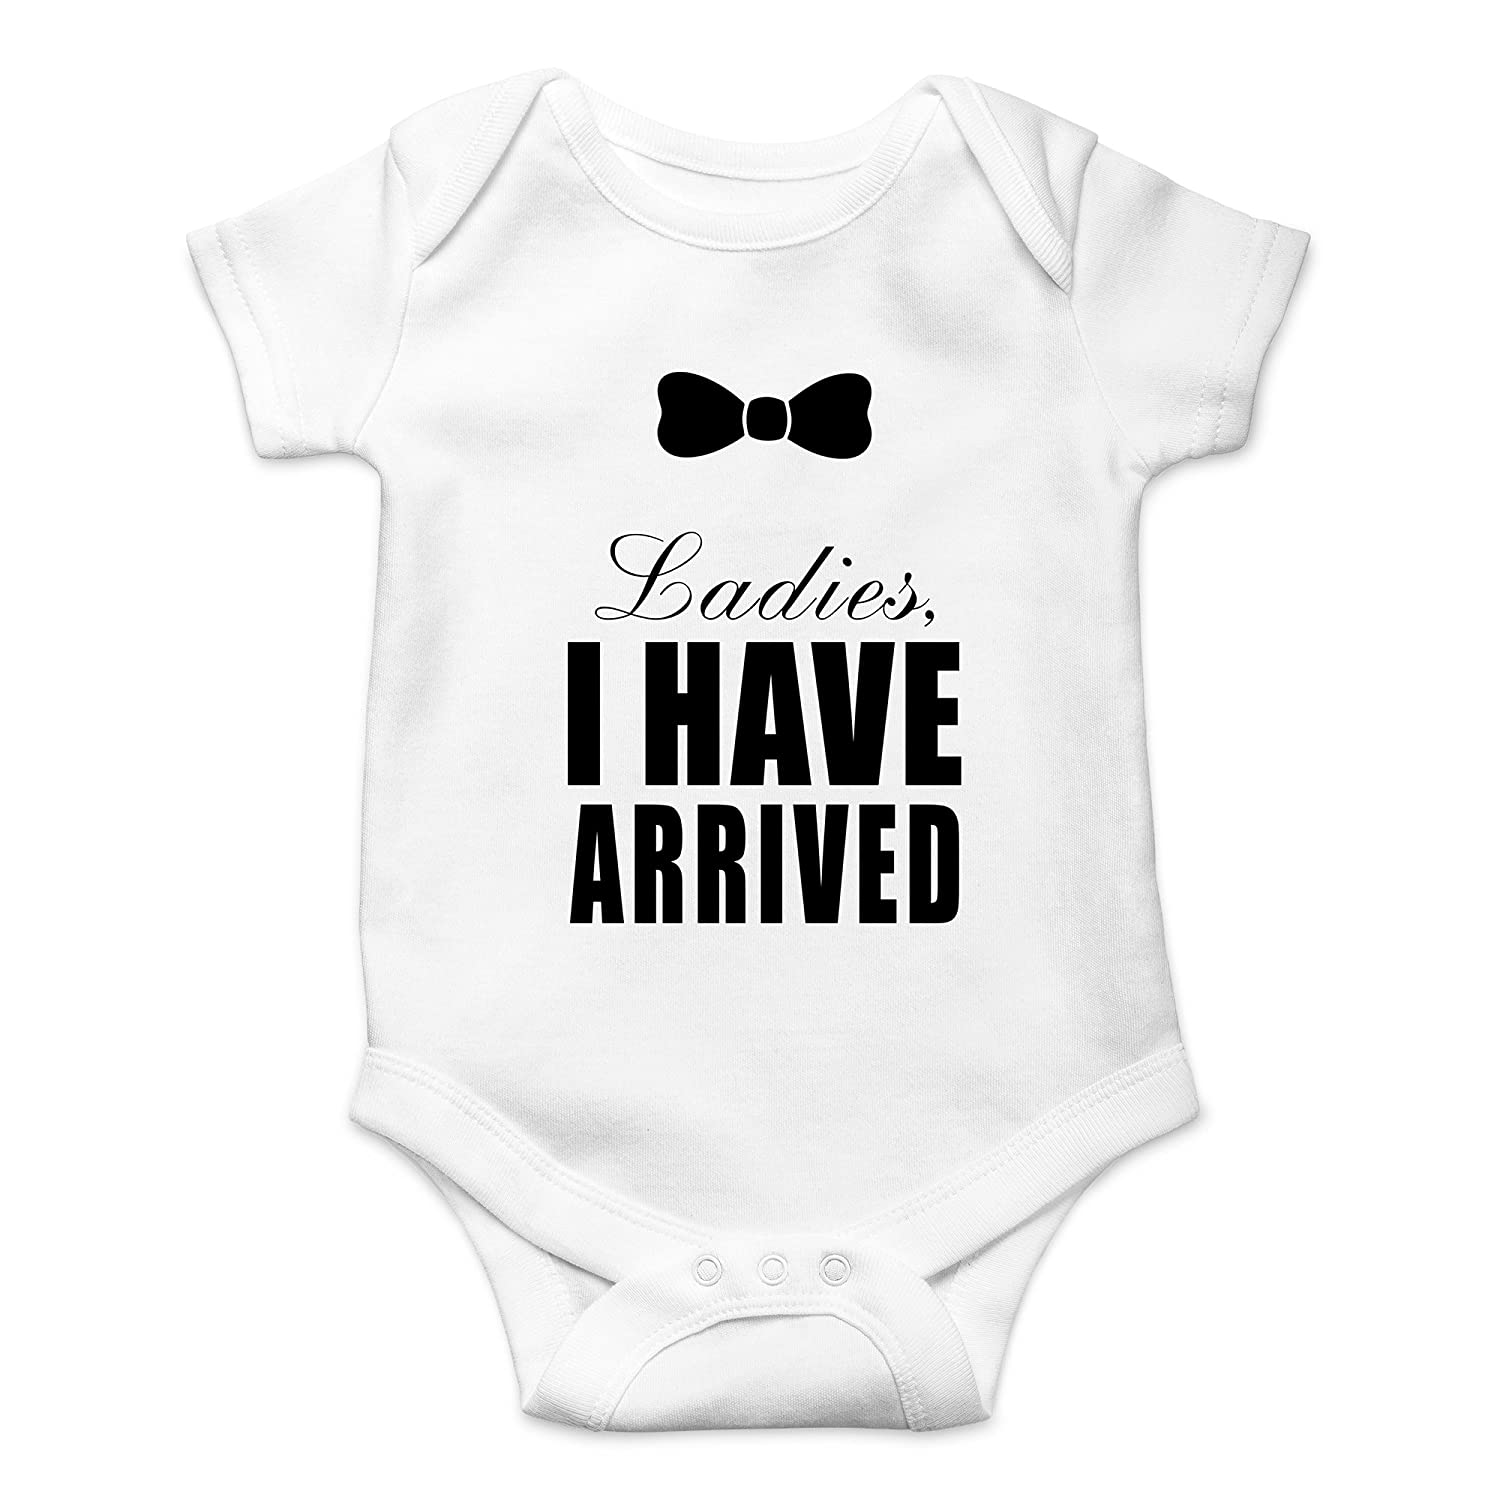 92467f650537 Amazon.com  CBTWear Ladies I Have Arrived - Gentleman Funny Newborn Romper  Cute Novelty Infant One-Piece Baby Bodysuit  Clothing